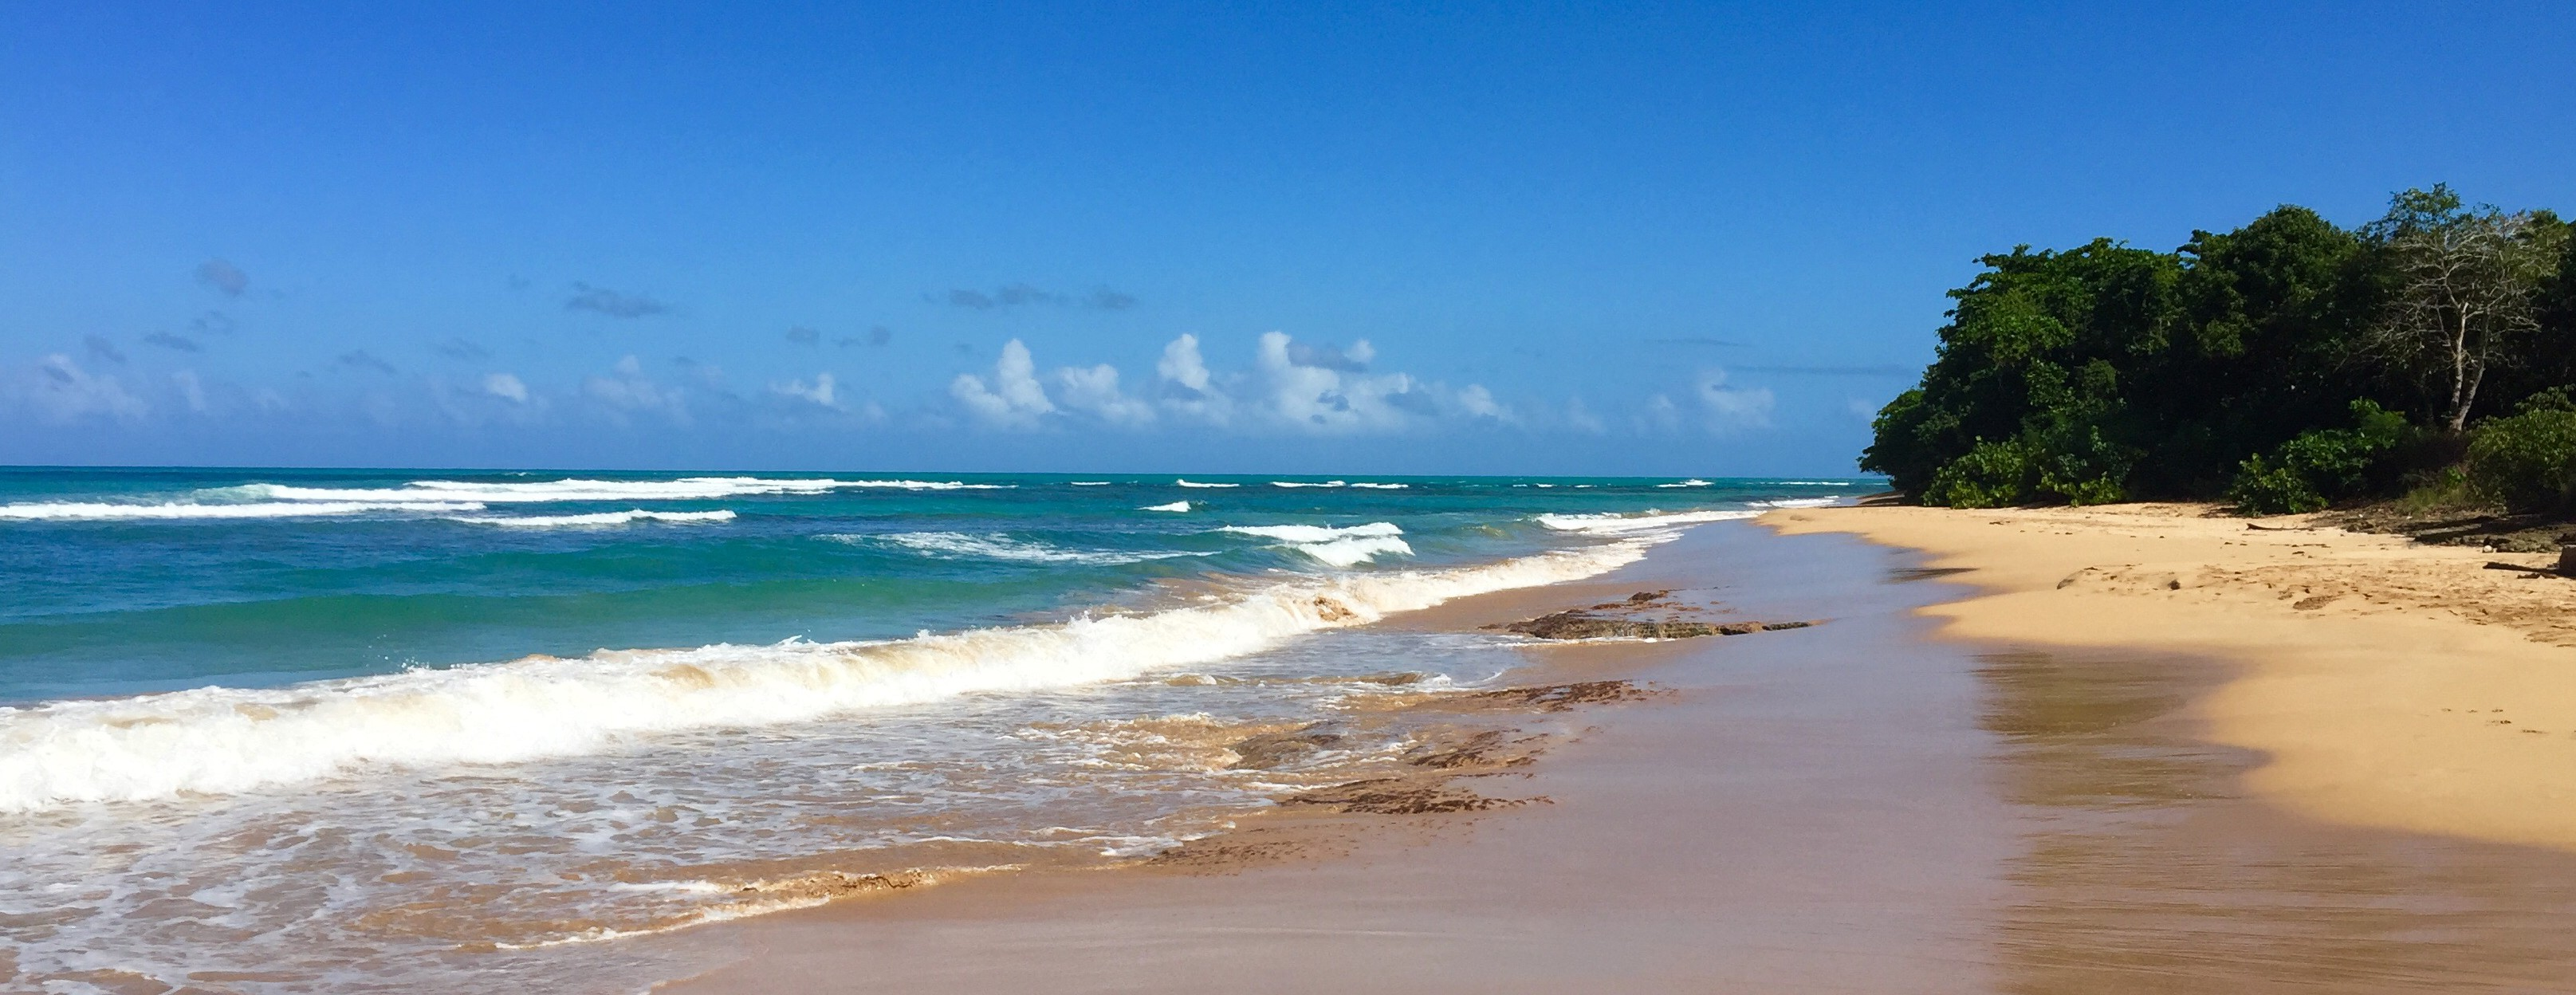 Playa La Selva Puerto Rico - Beaches and Brie